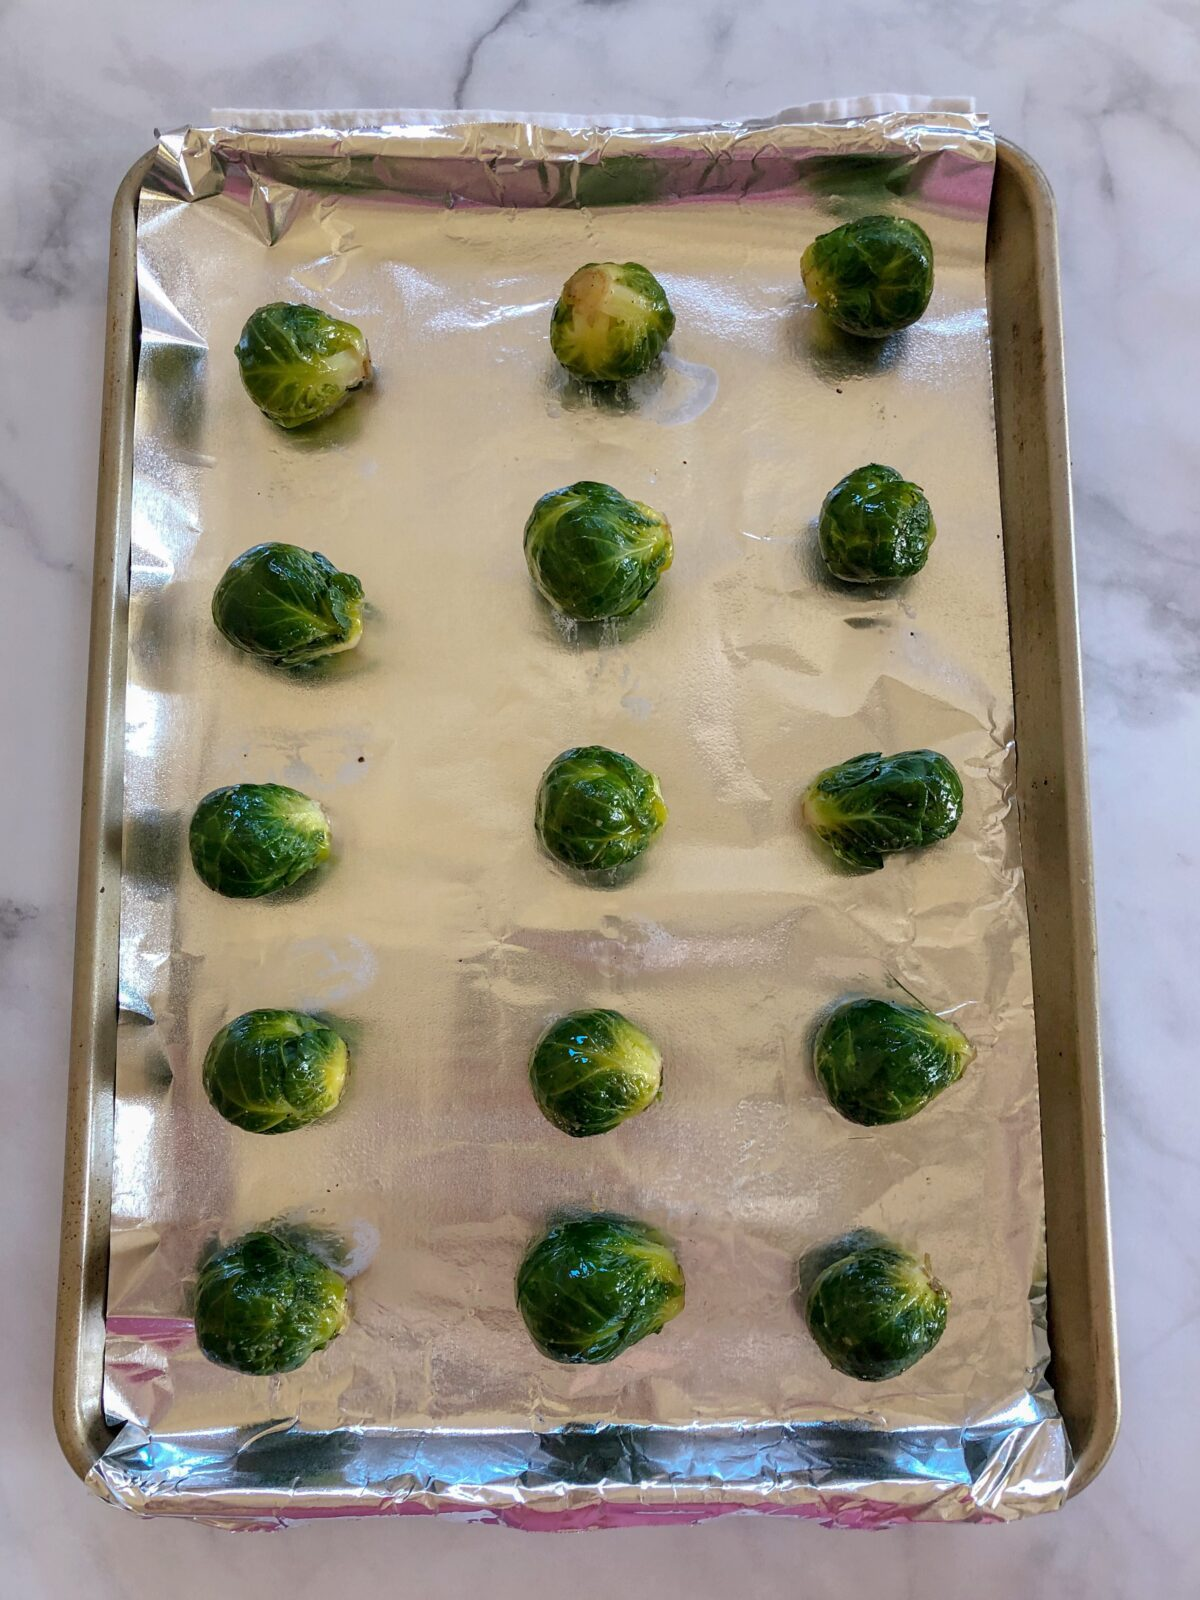 brussels, brussels sprouts, smashed brussels, smashed brussels sprouts, vegan cheese